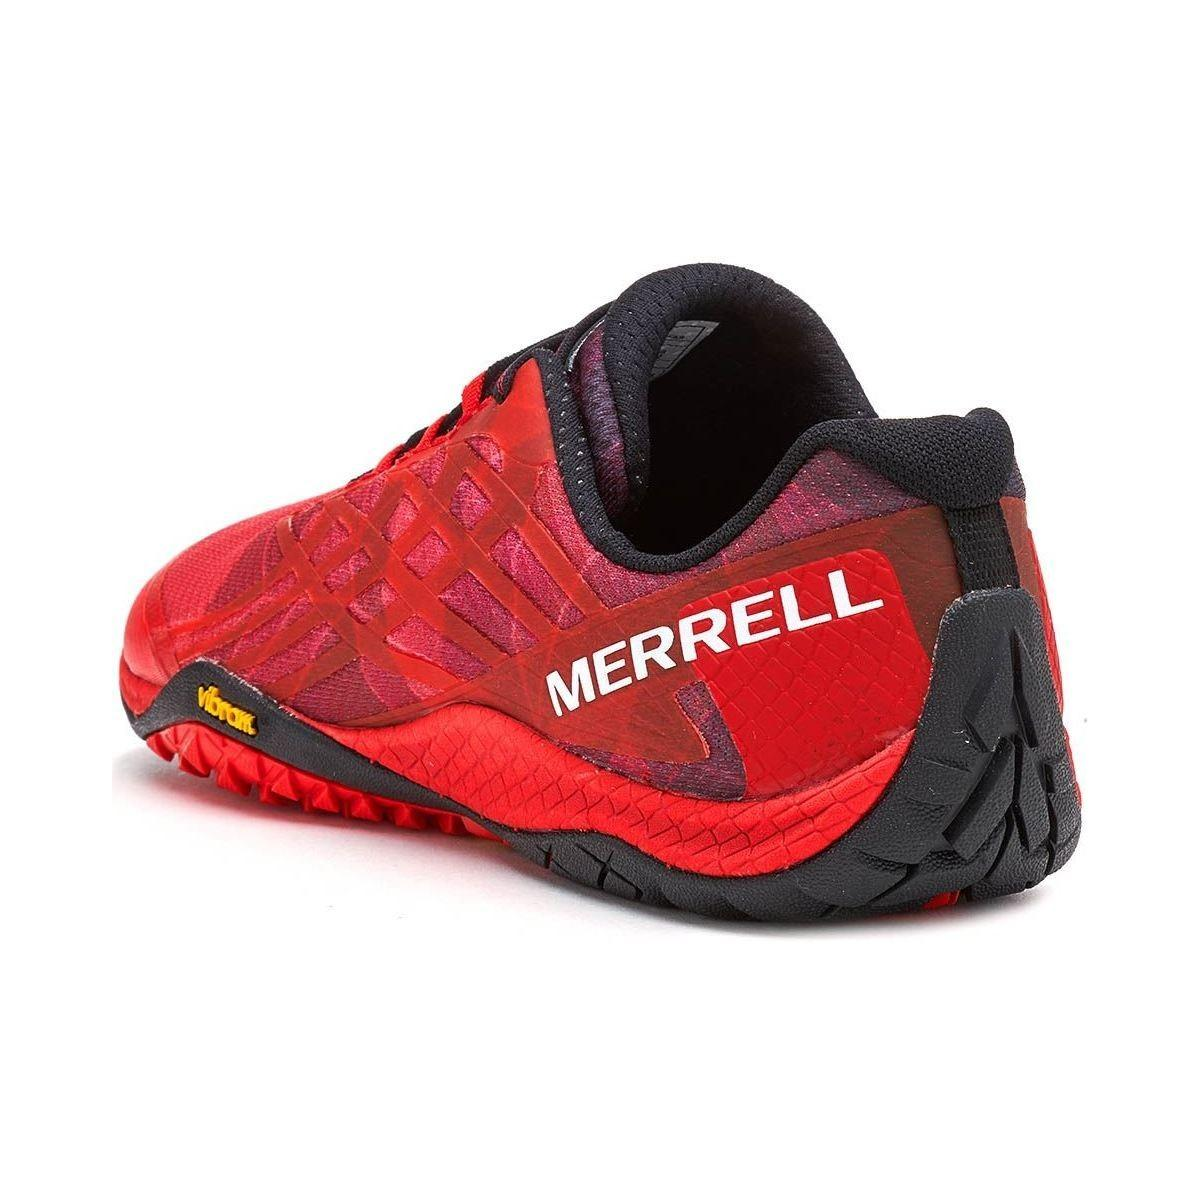 Merrell Trail Glove 4 Trainers In